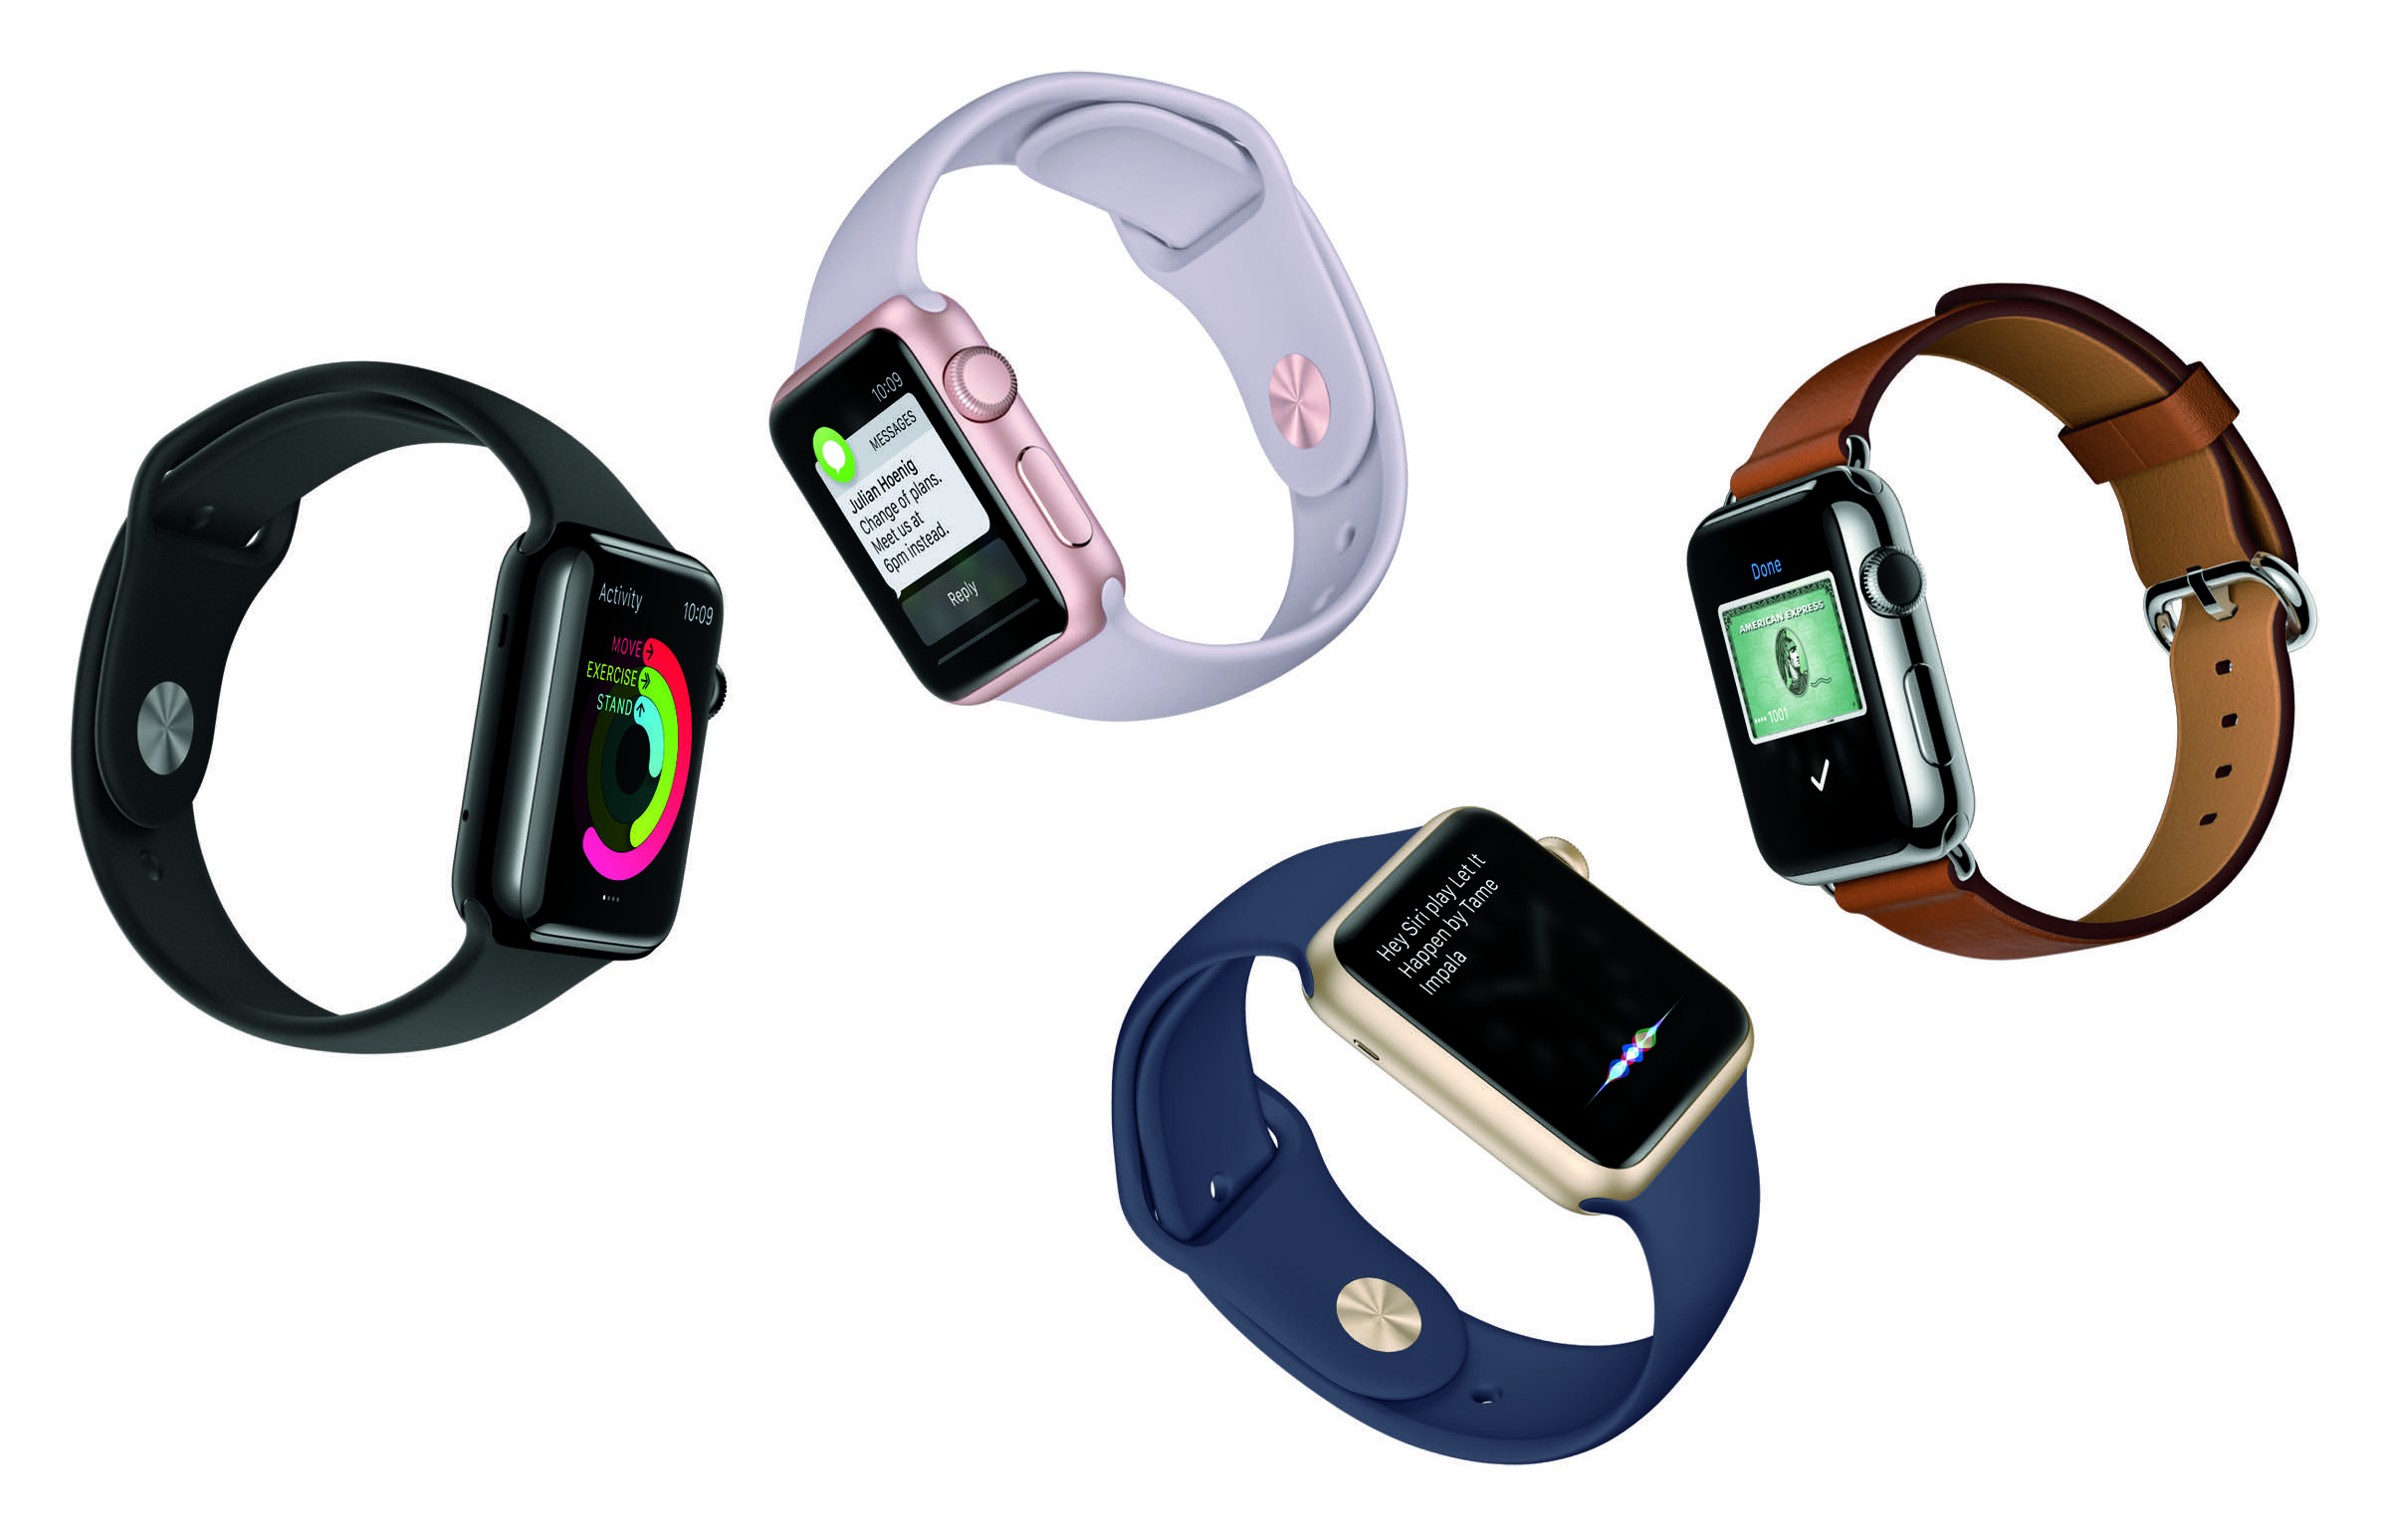 Is it too early for 'Apple Watch 2?'